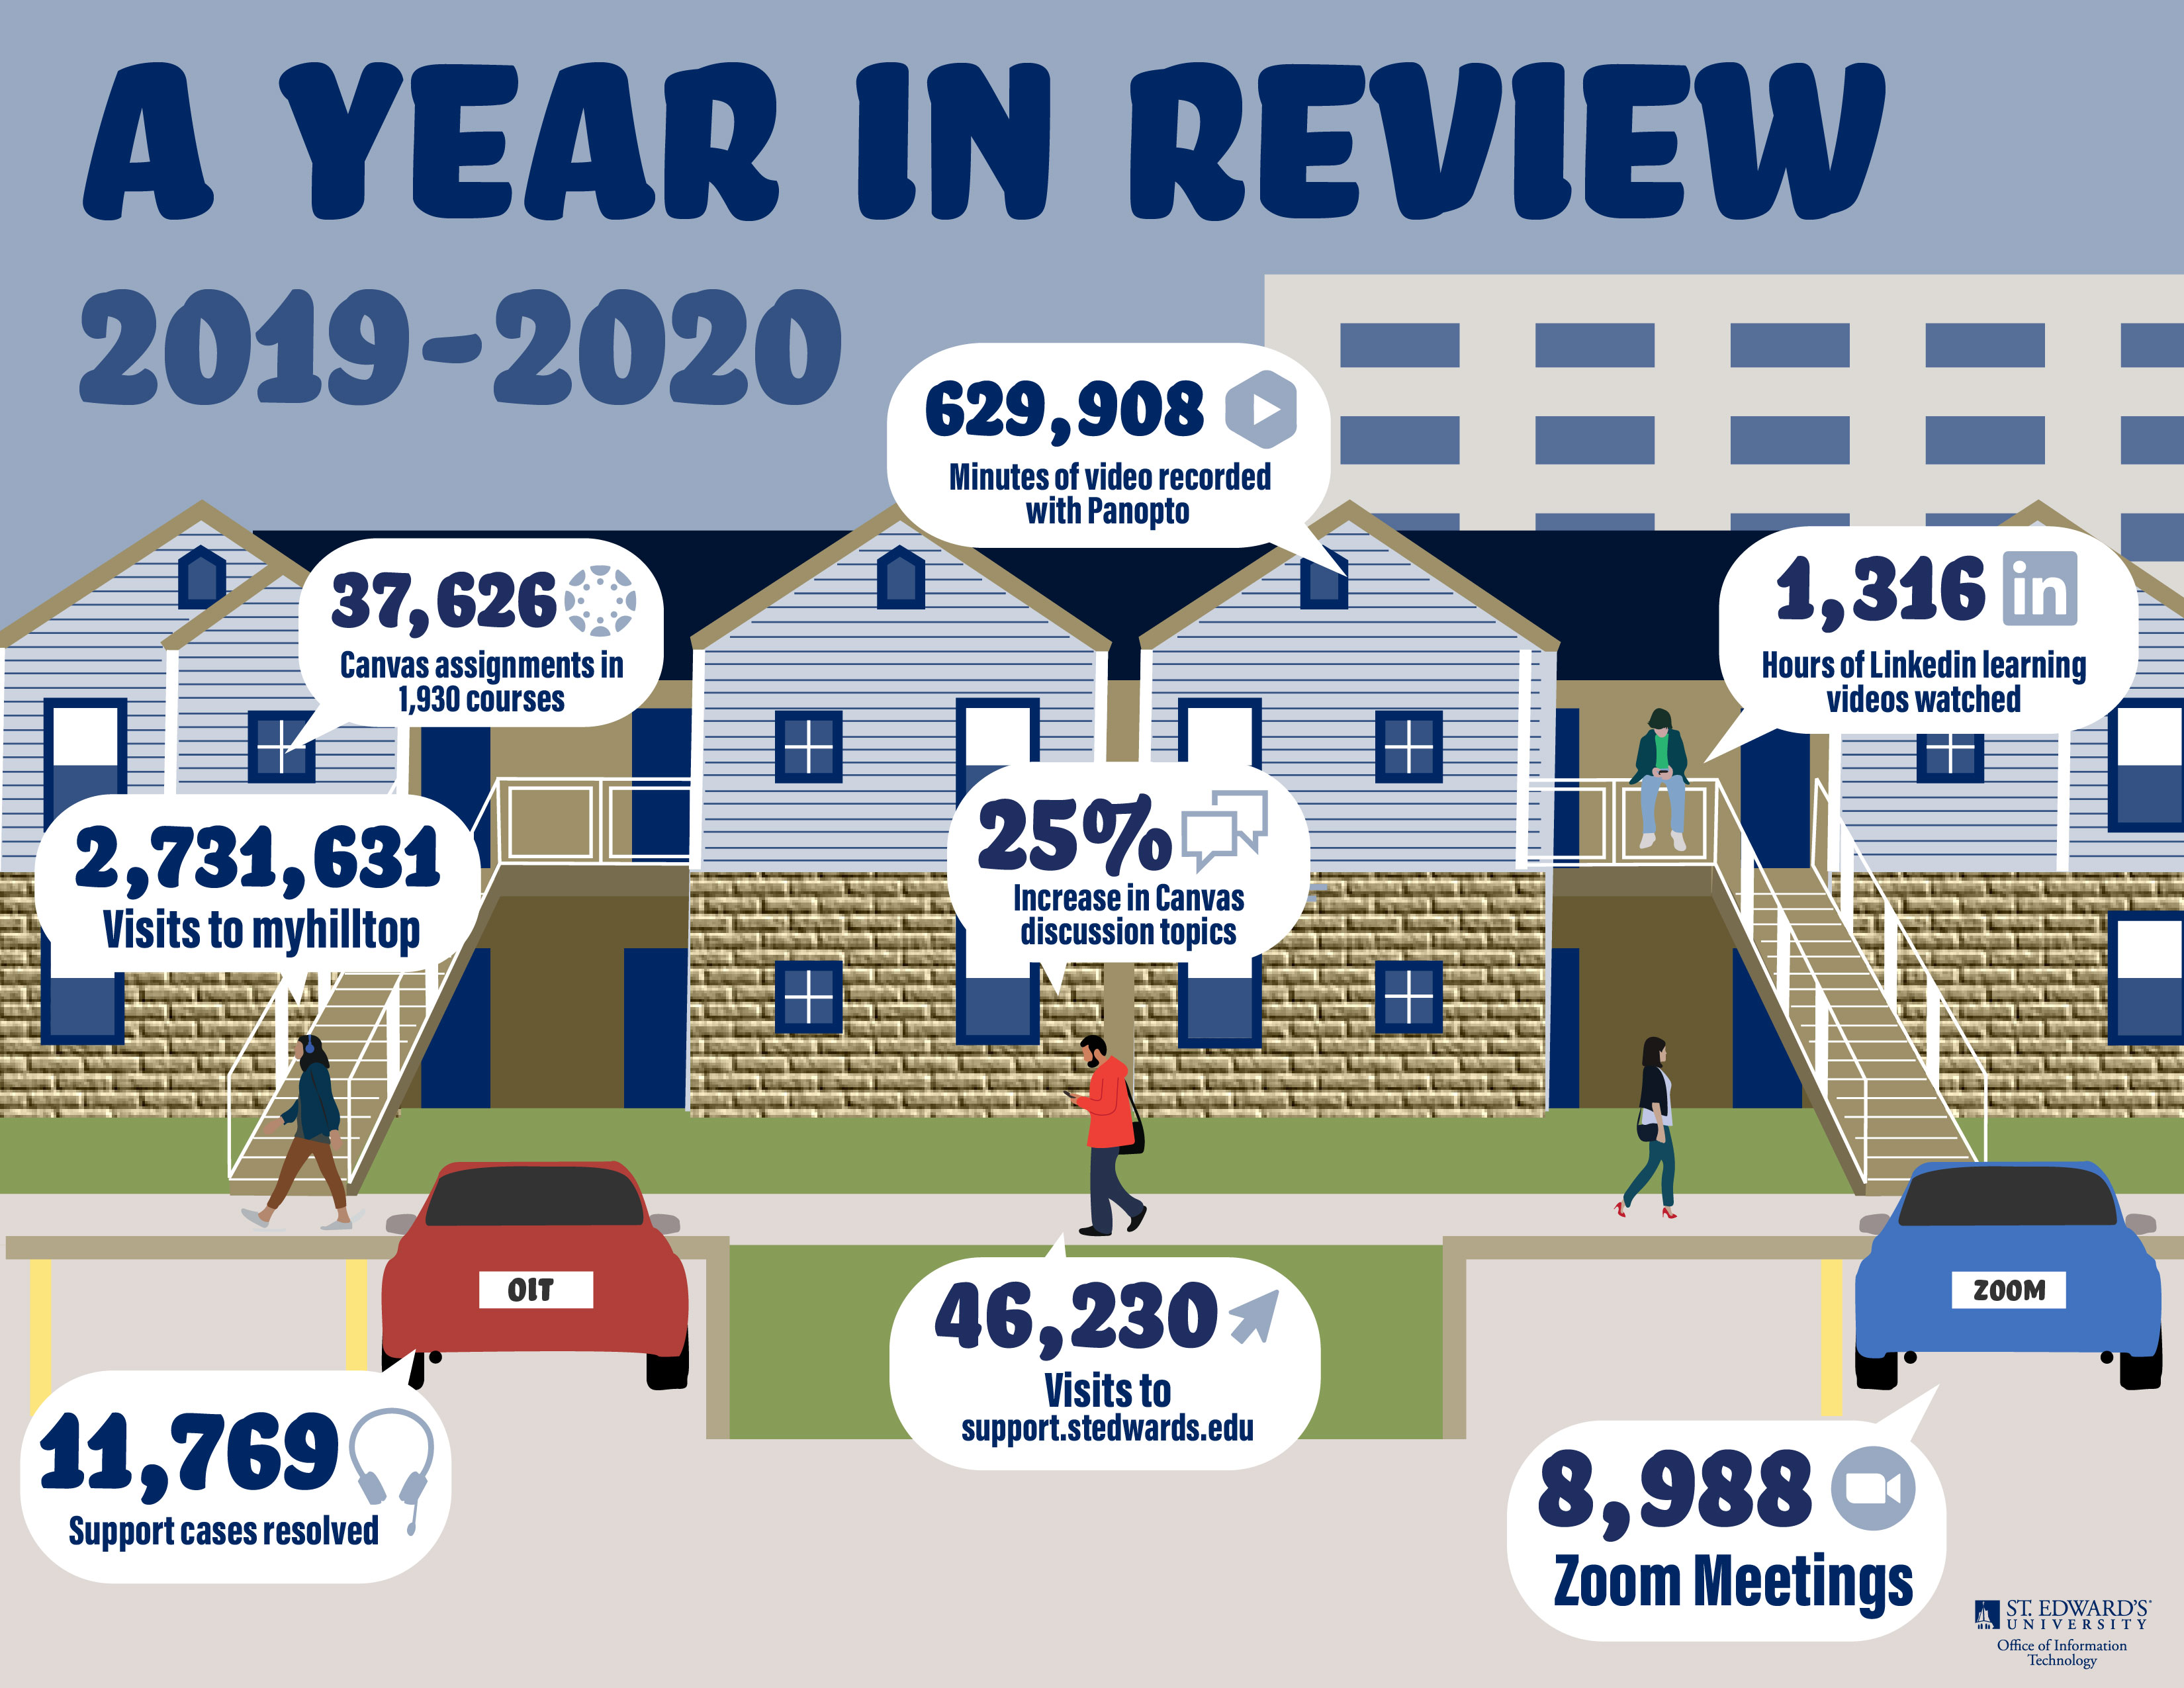 Year in Review graphic with relevant stats overlaid on an illustration of an apartment complex. All numbers are explained in text in the post.